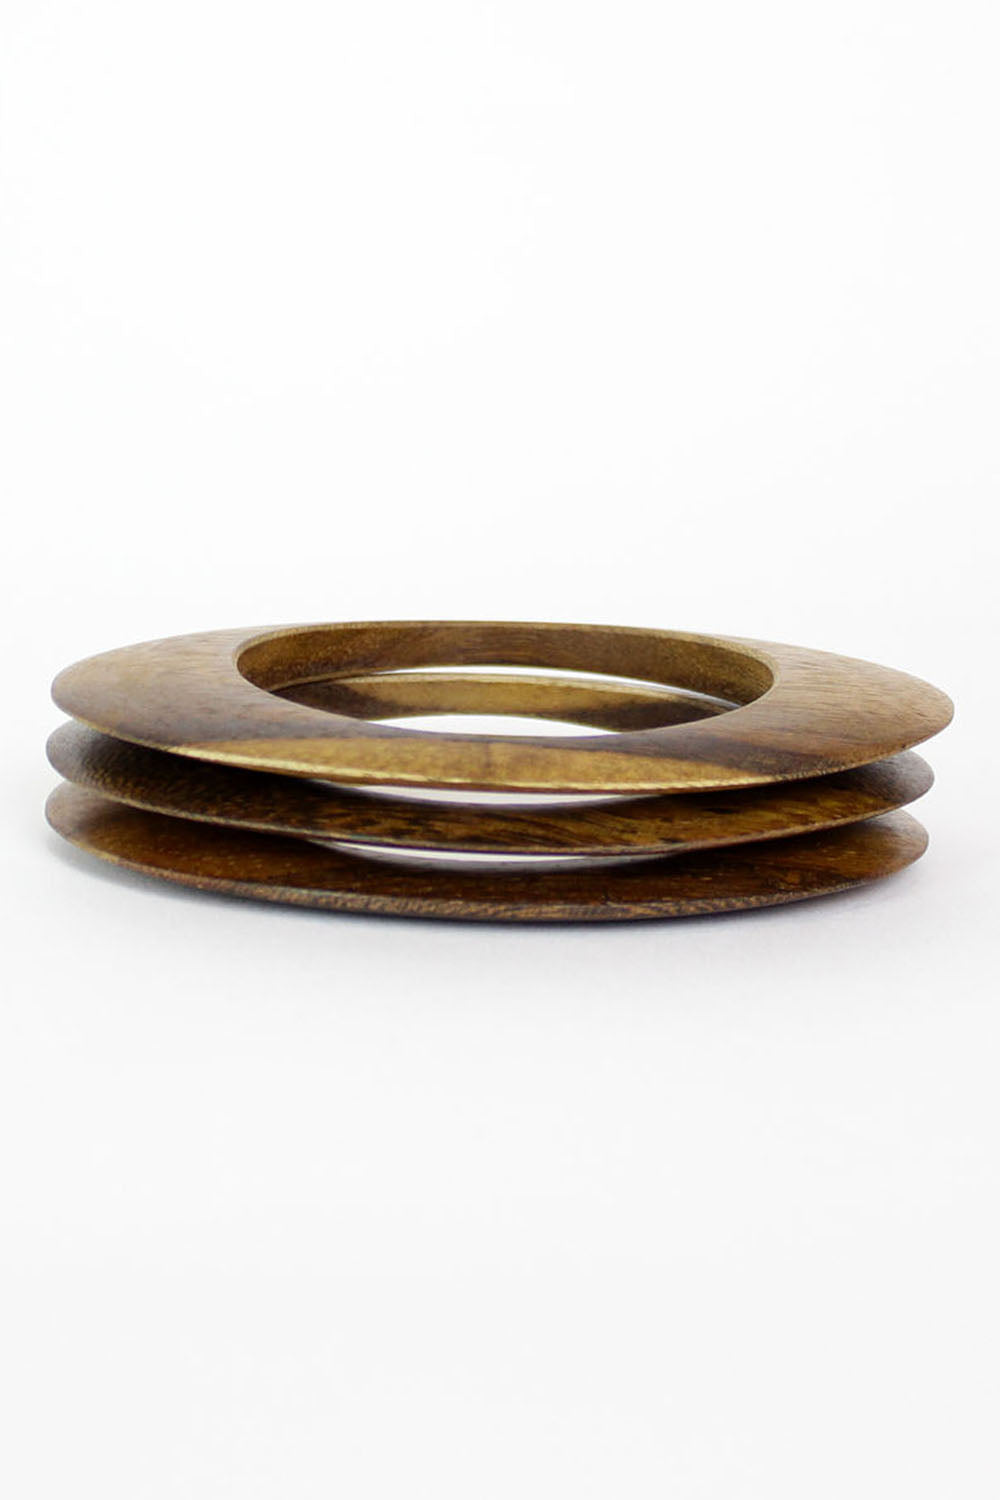 wood wind bangle